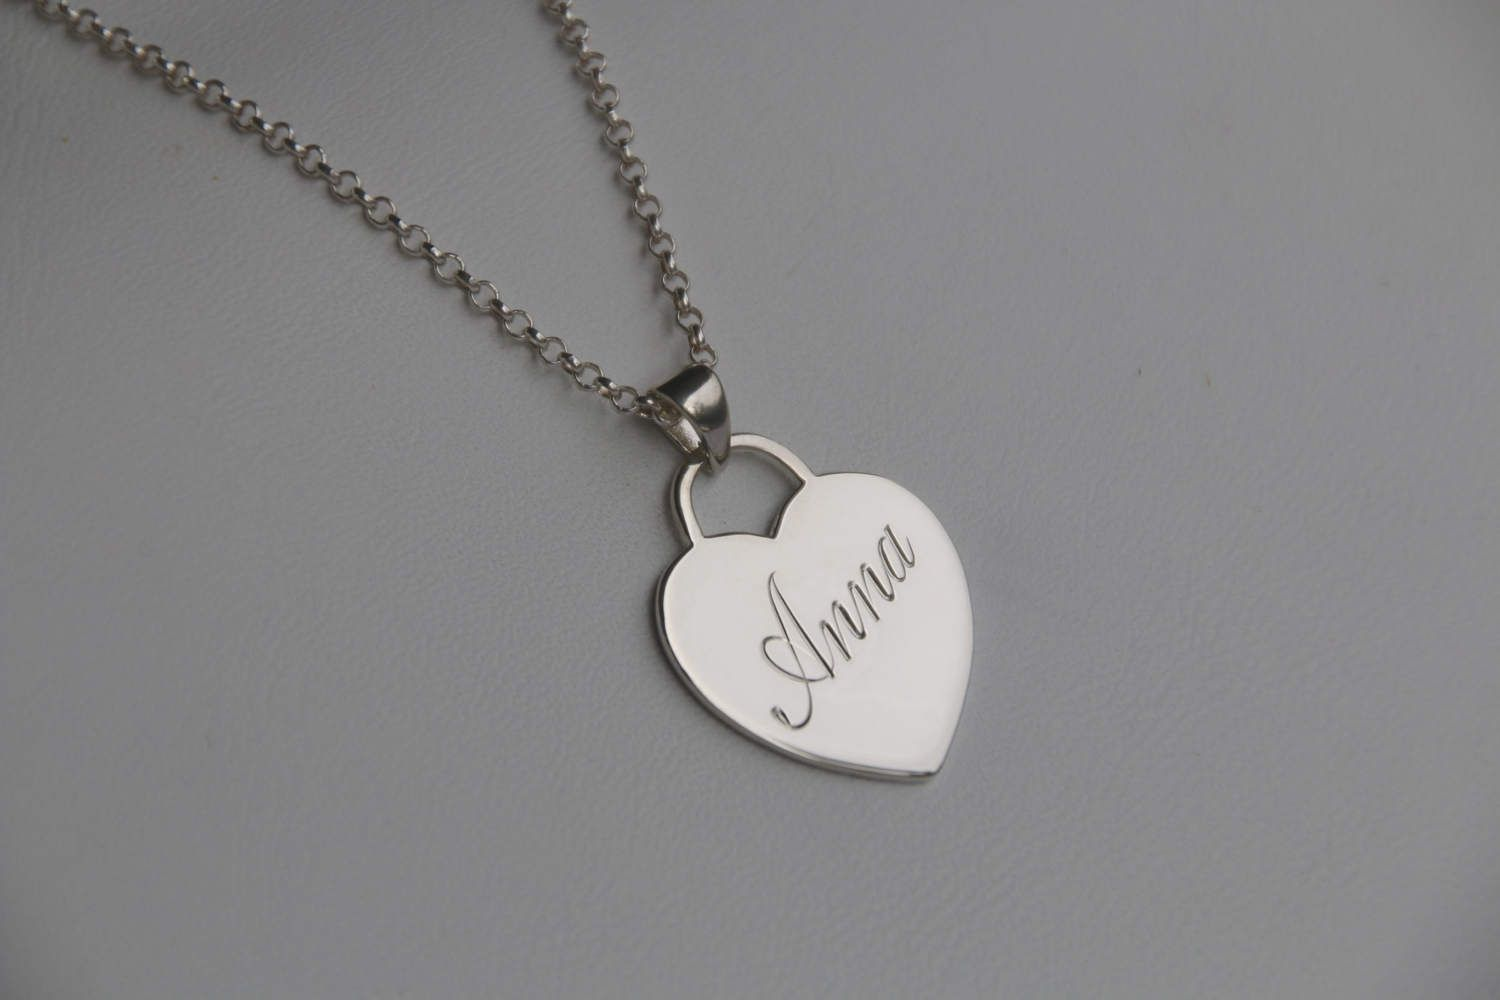 Personalised name necklace silver heart pendant monogram pendant